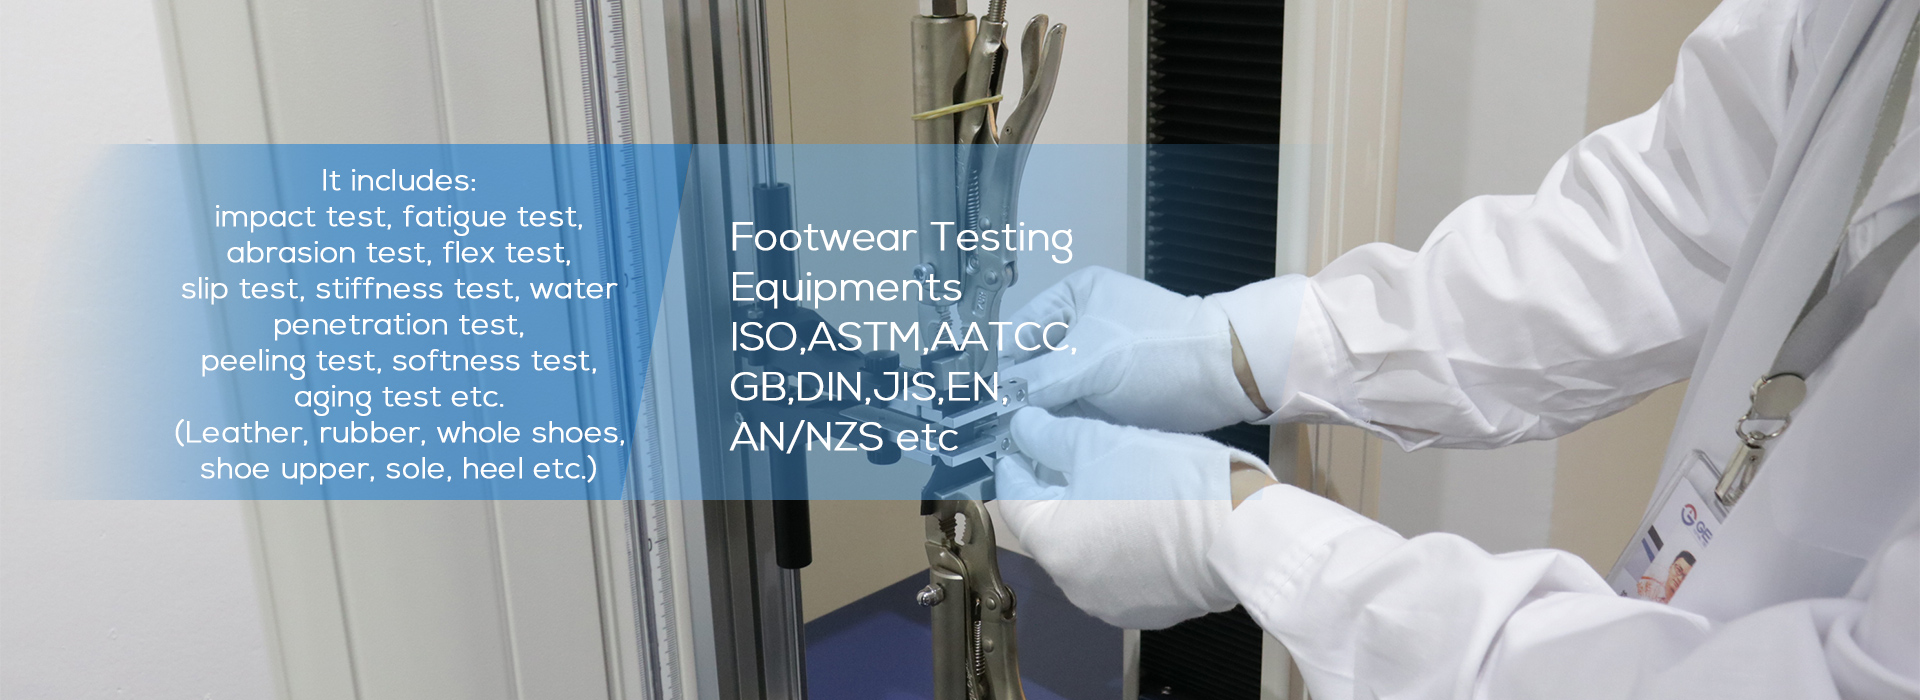 Footwear Testing Equipment